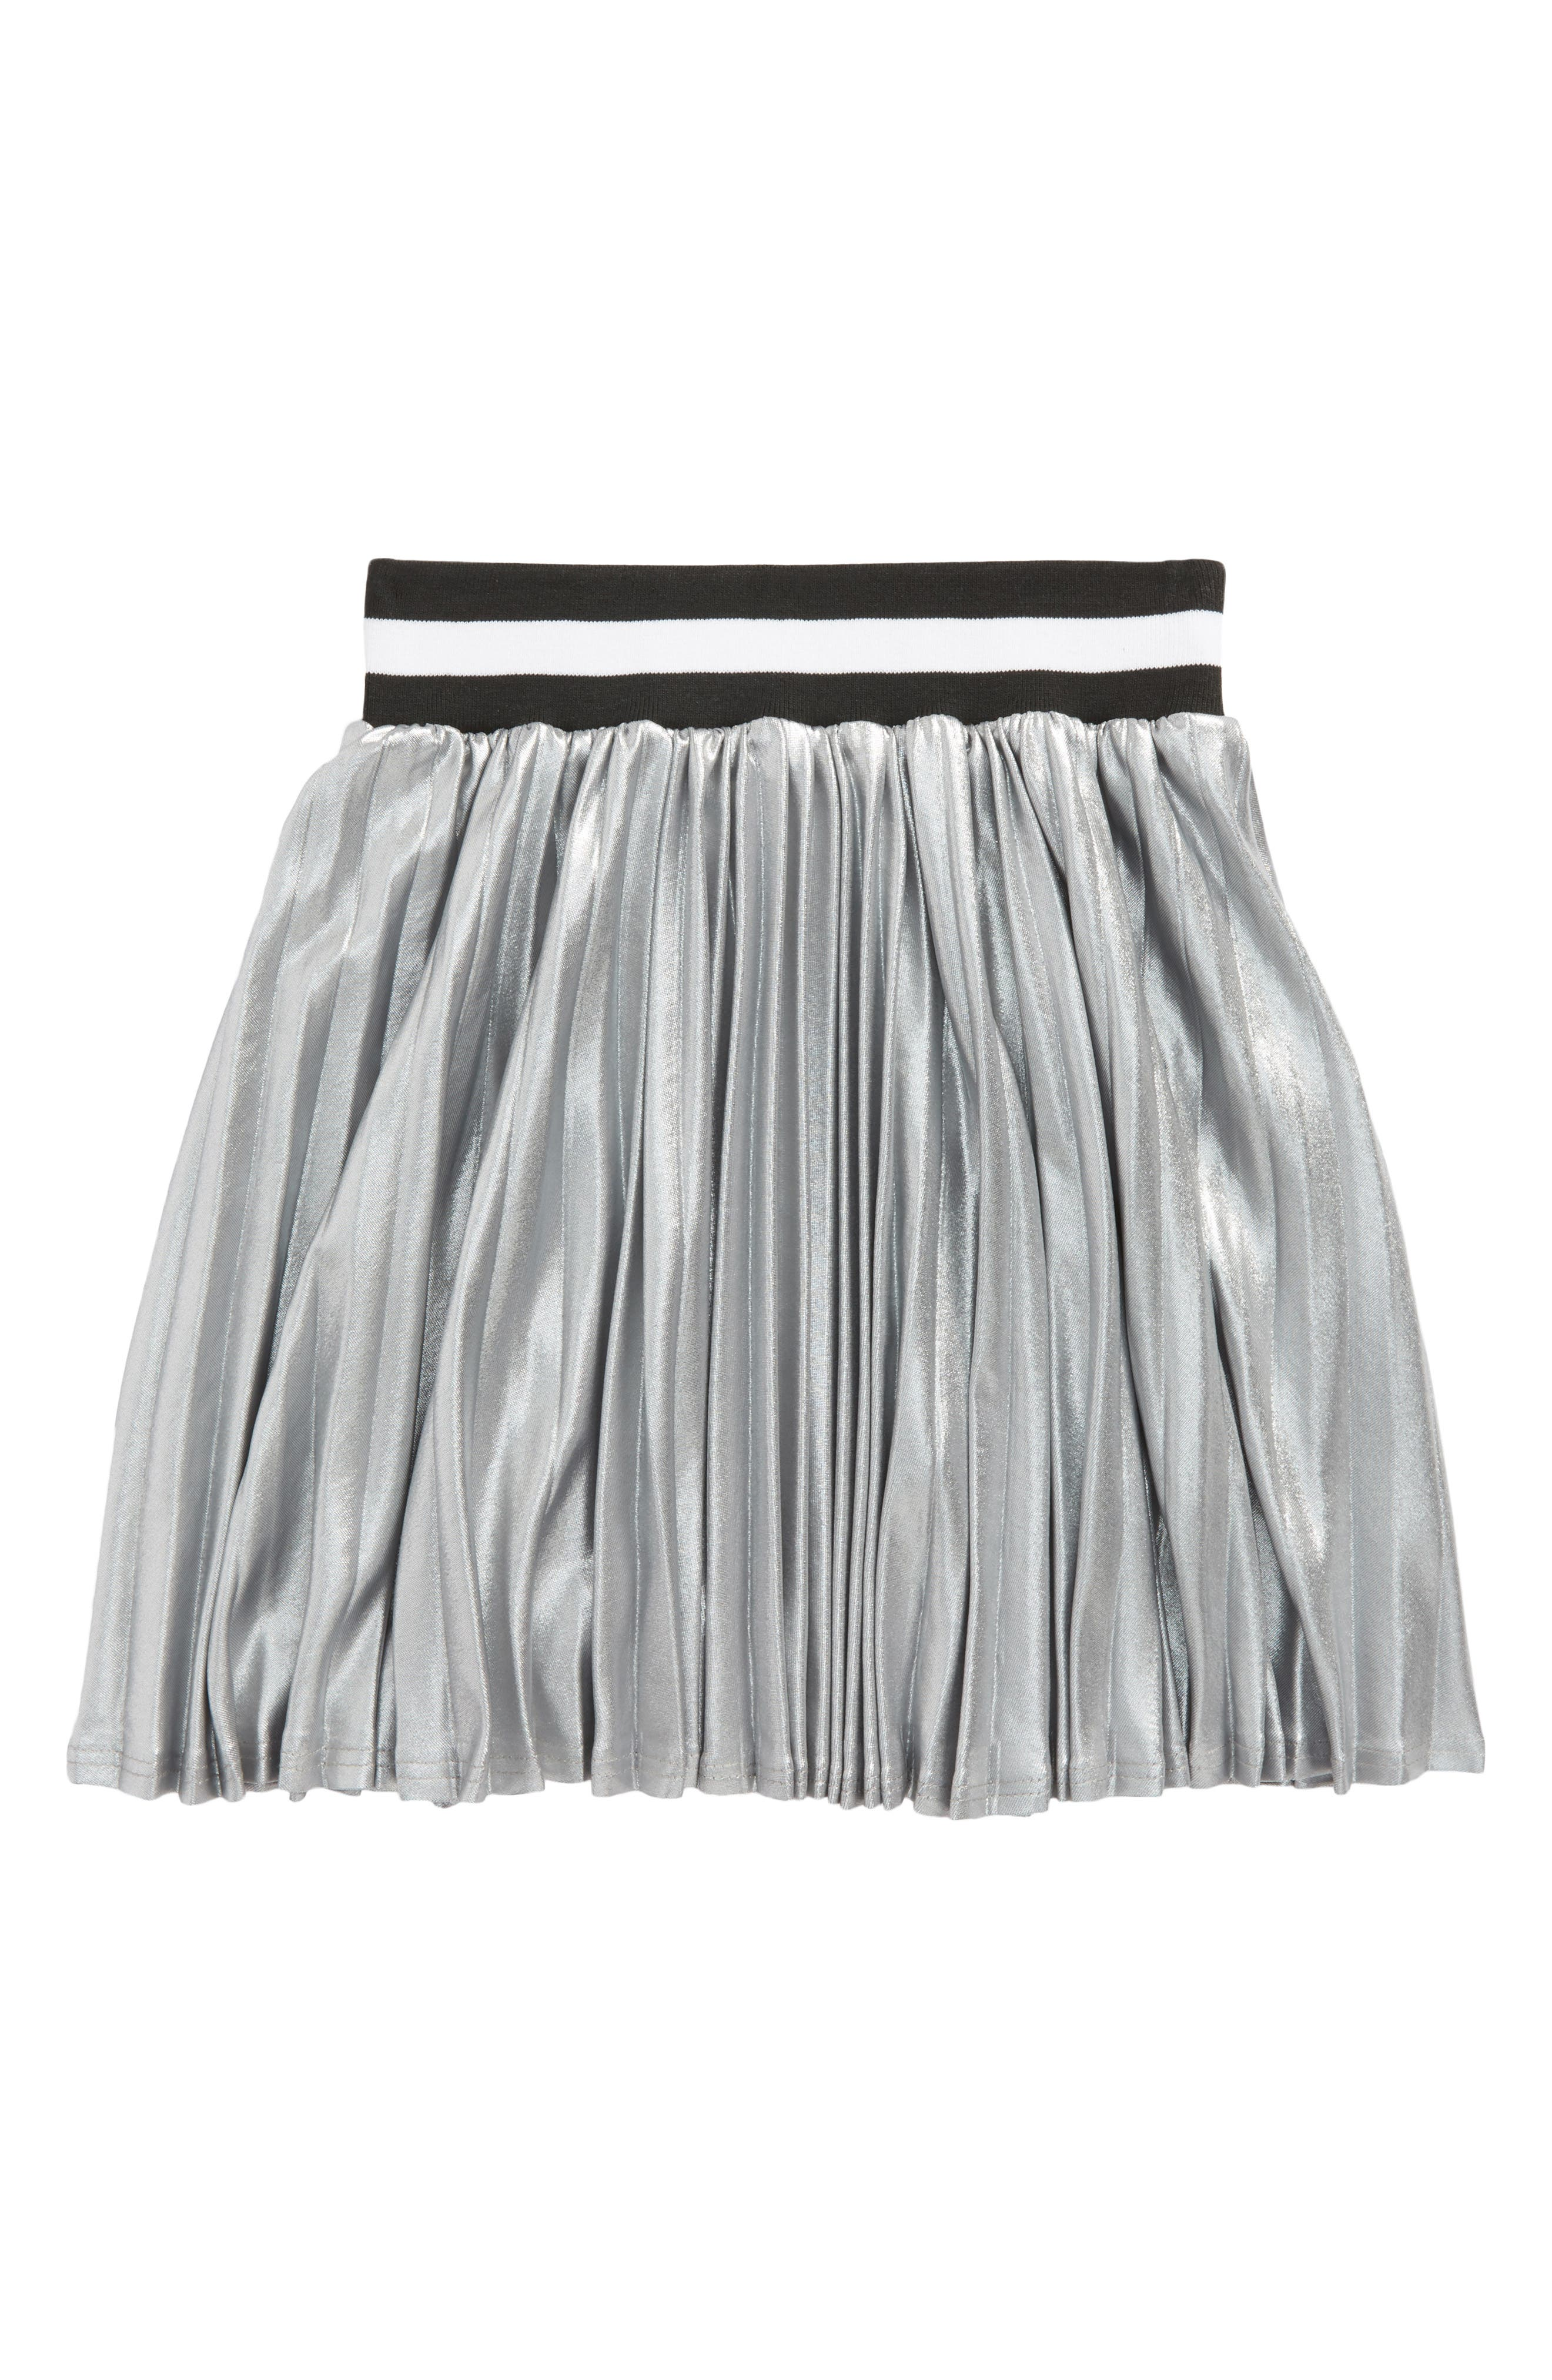 Aly Skirt,                         Main,                         color, Silver